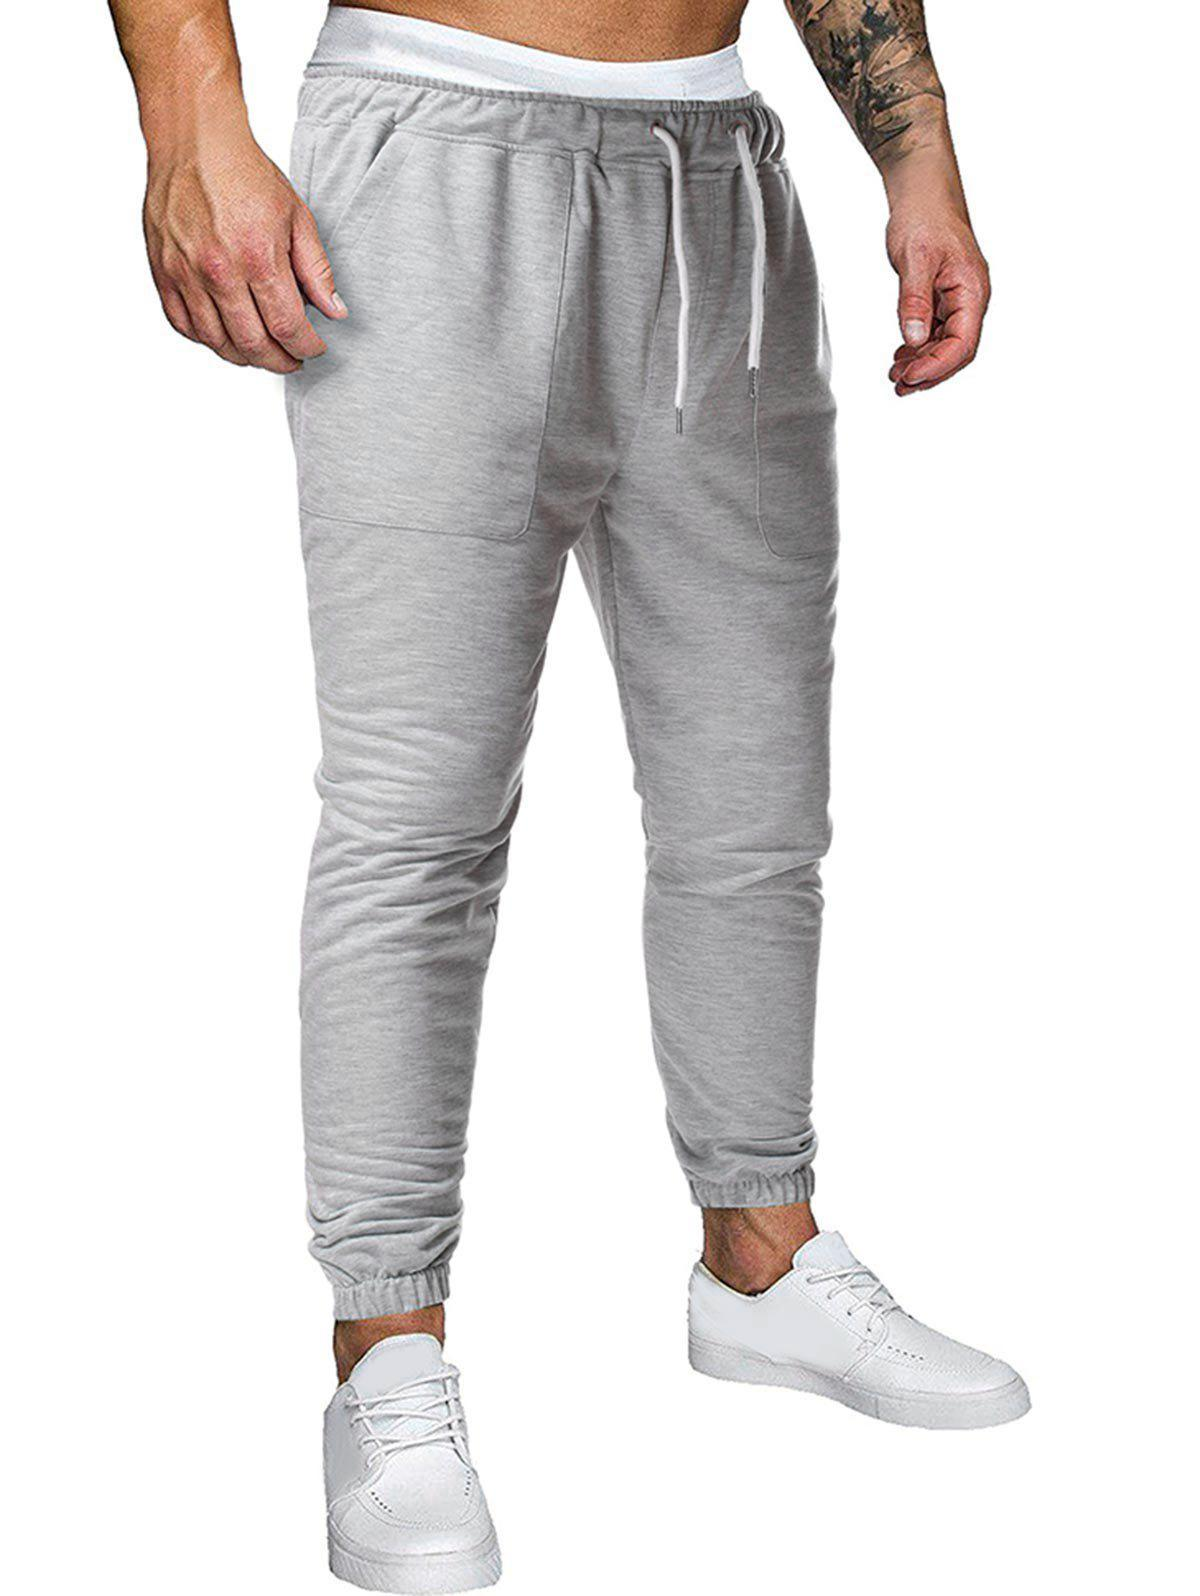 Drawstring Applique Detail Heathered Sports Pants - LIGHT GRAY XXL